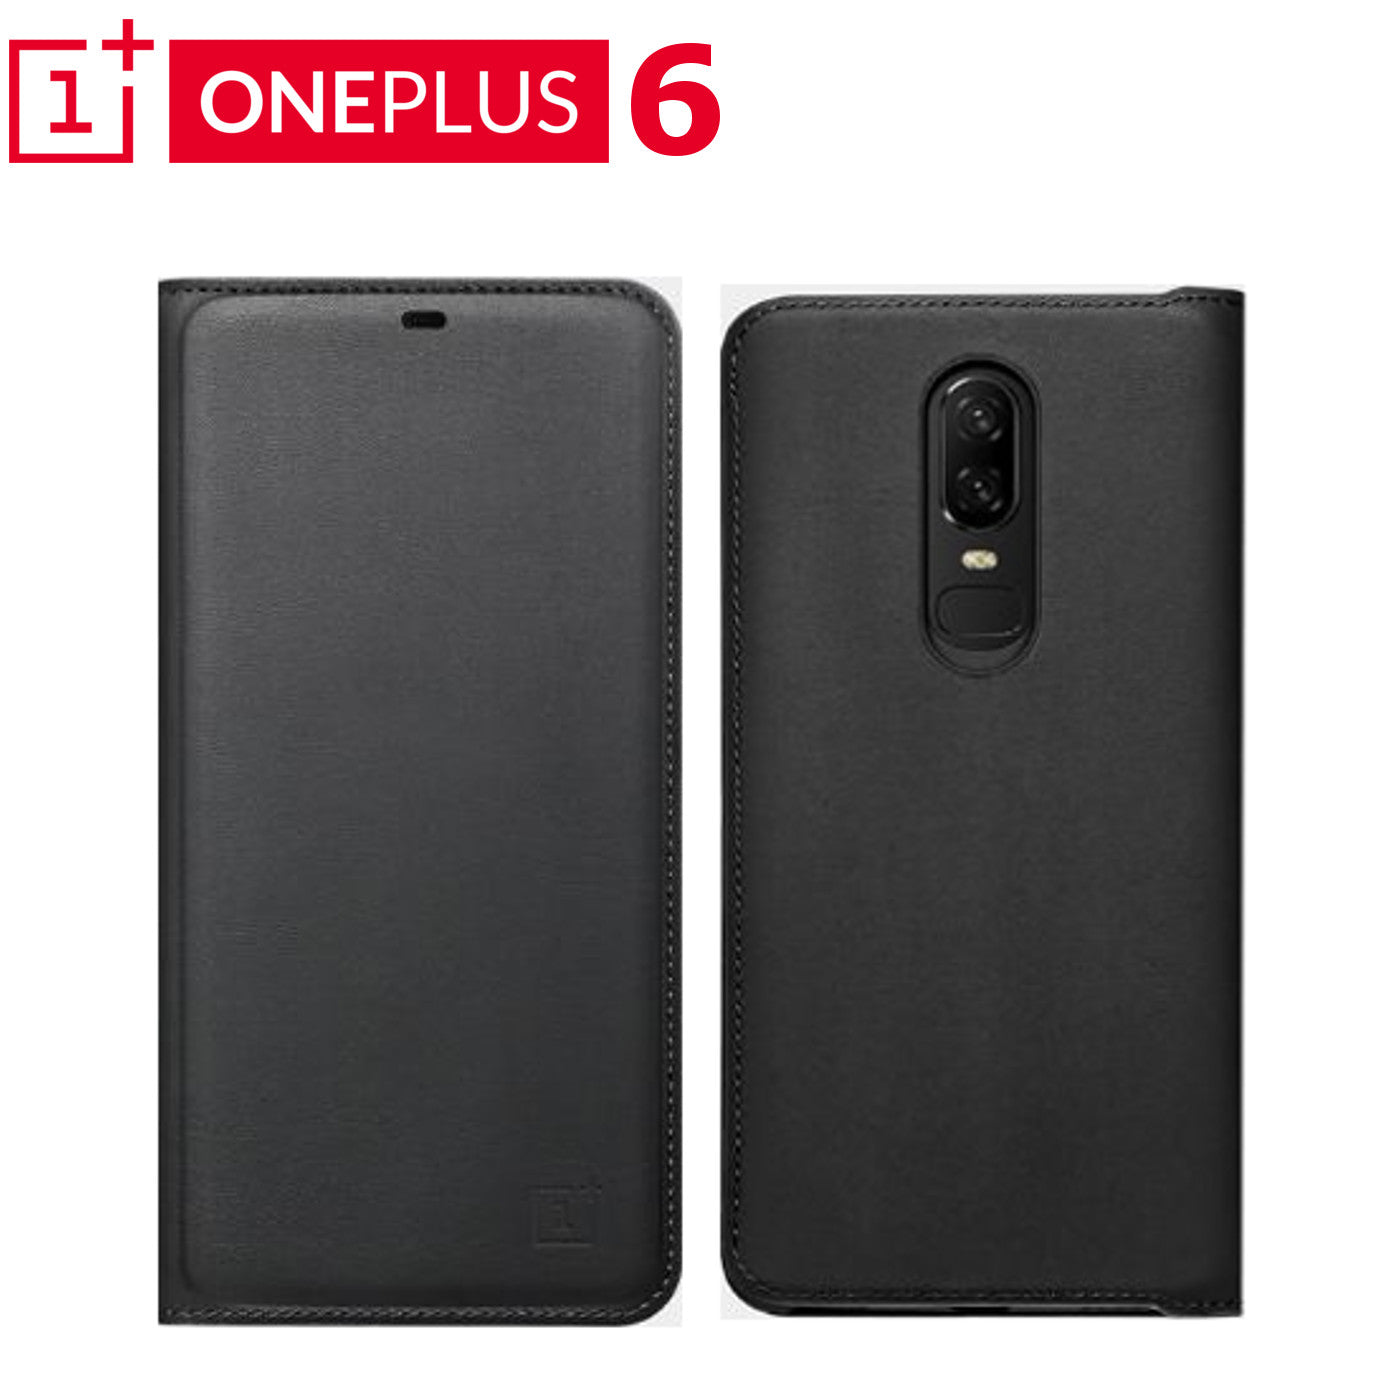 info for 94daf 5cc44 Elegant Smart Auto Sleep Wake Up Sensor Flip Case Cover for OnePlus 6/ One  Plus 6 - BLACK